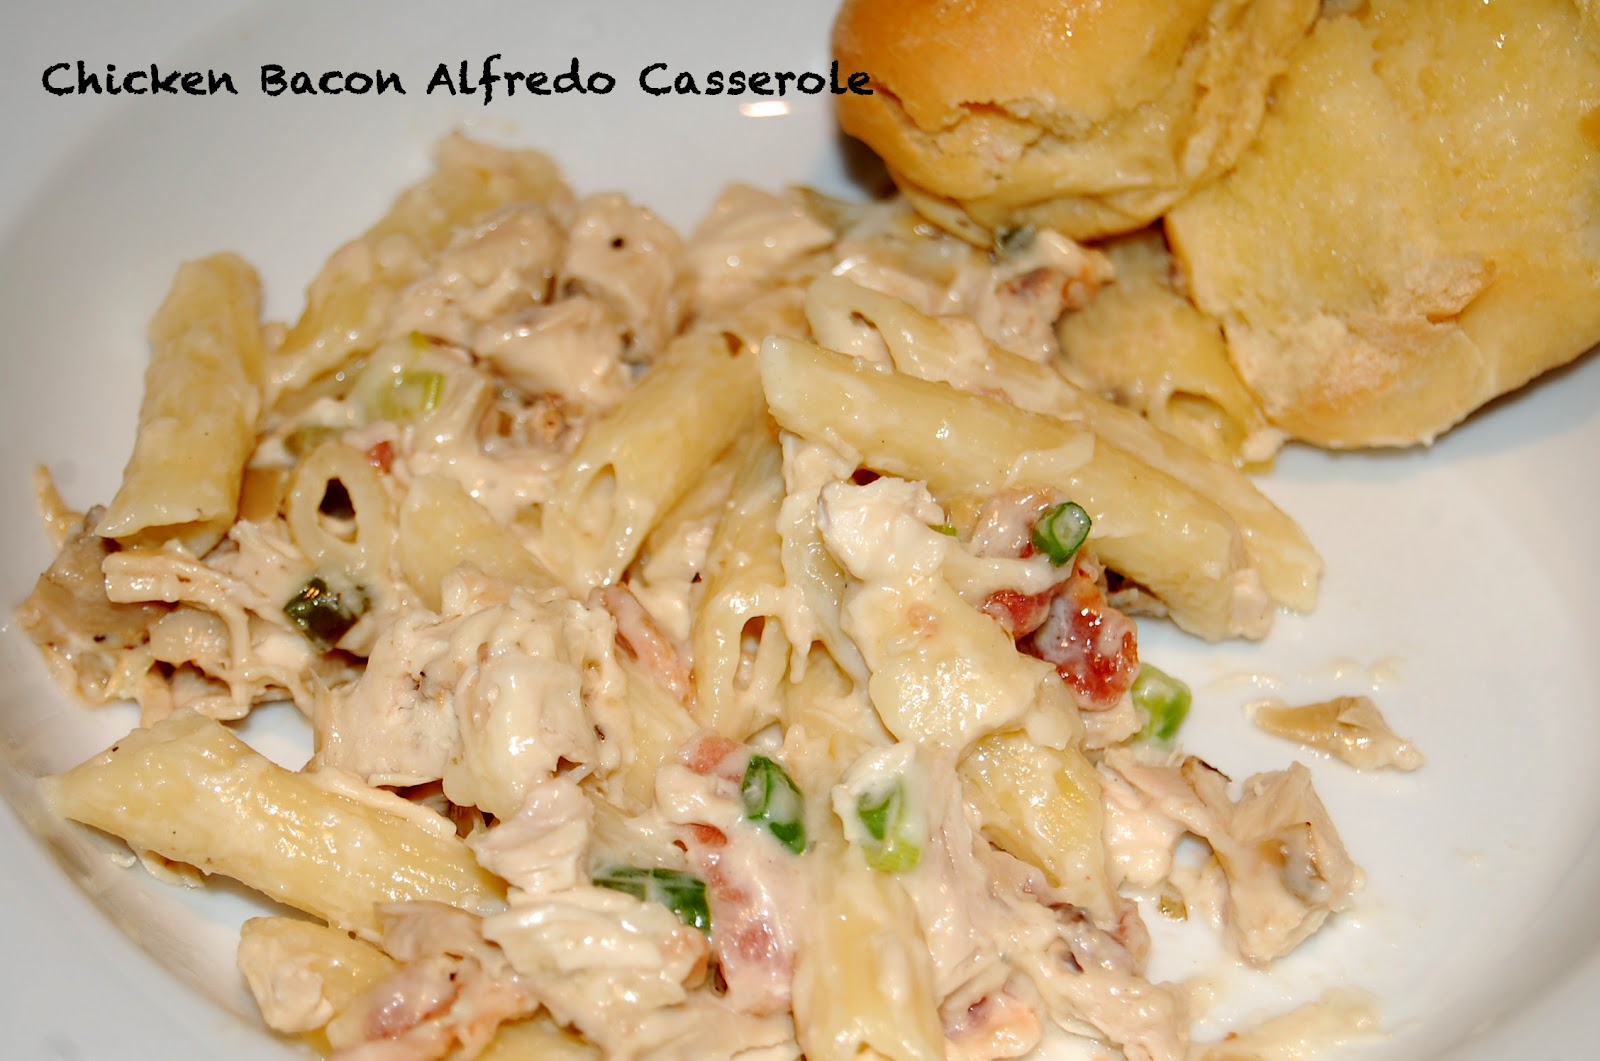 ... roll recipe that Easy Baked Chicken Alfredo Easy Baked Chicken Alfredo